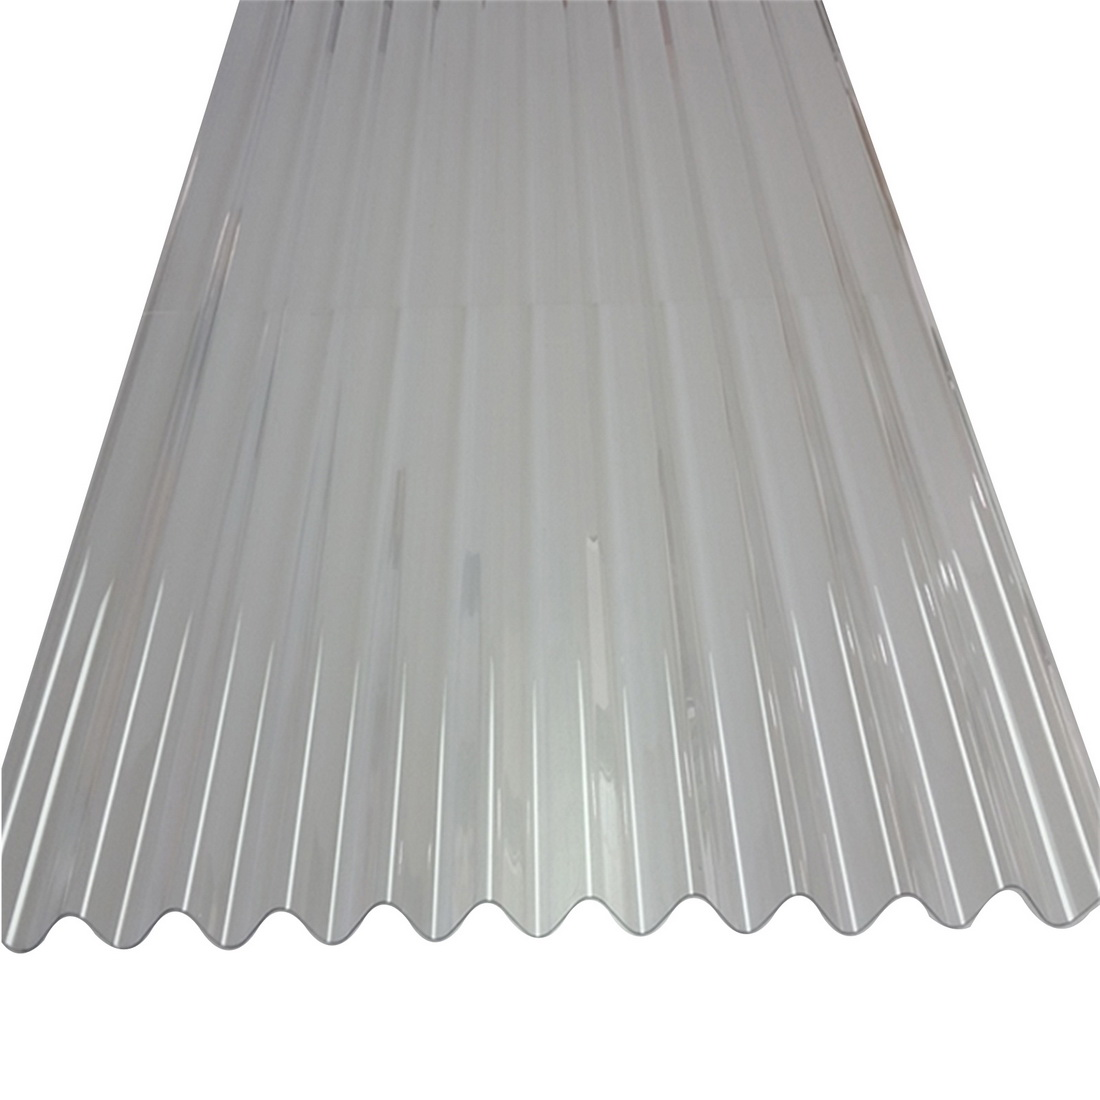 Sunlite Corrugated Roofing 2400 x 660 x 0.8mm PVC Clear SUN-CORR-CLR-2400